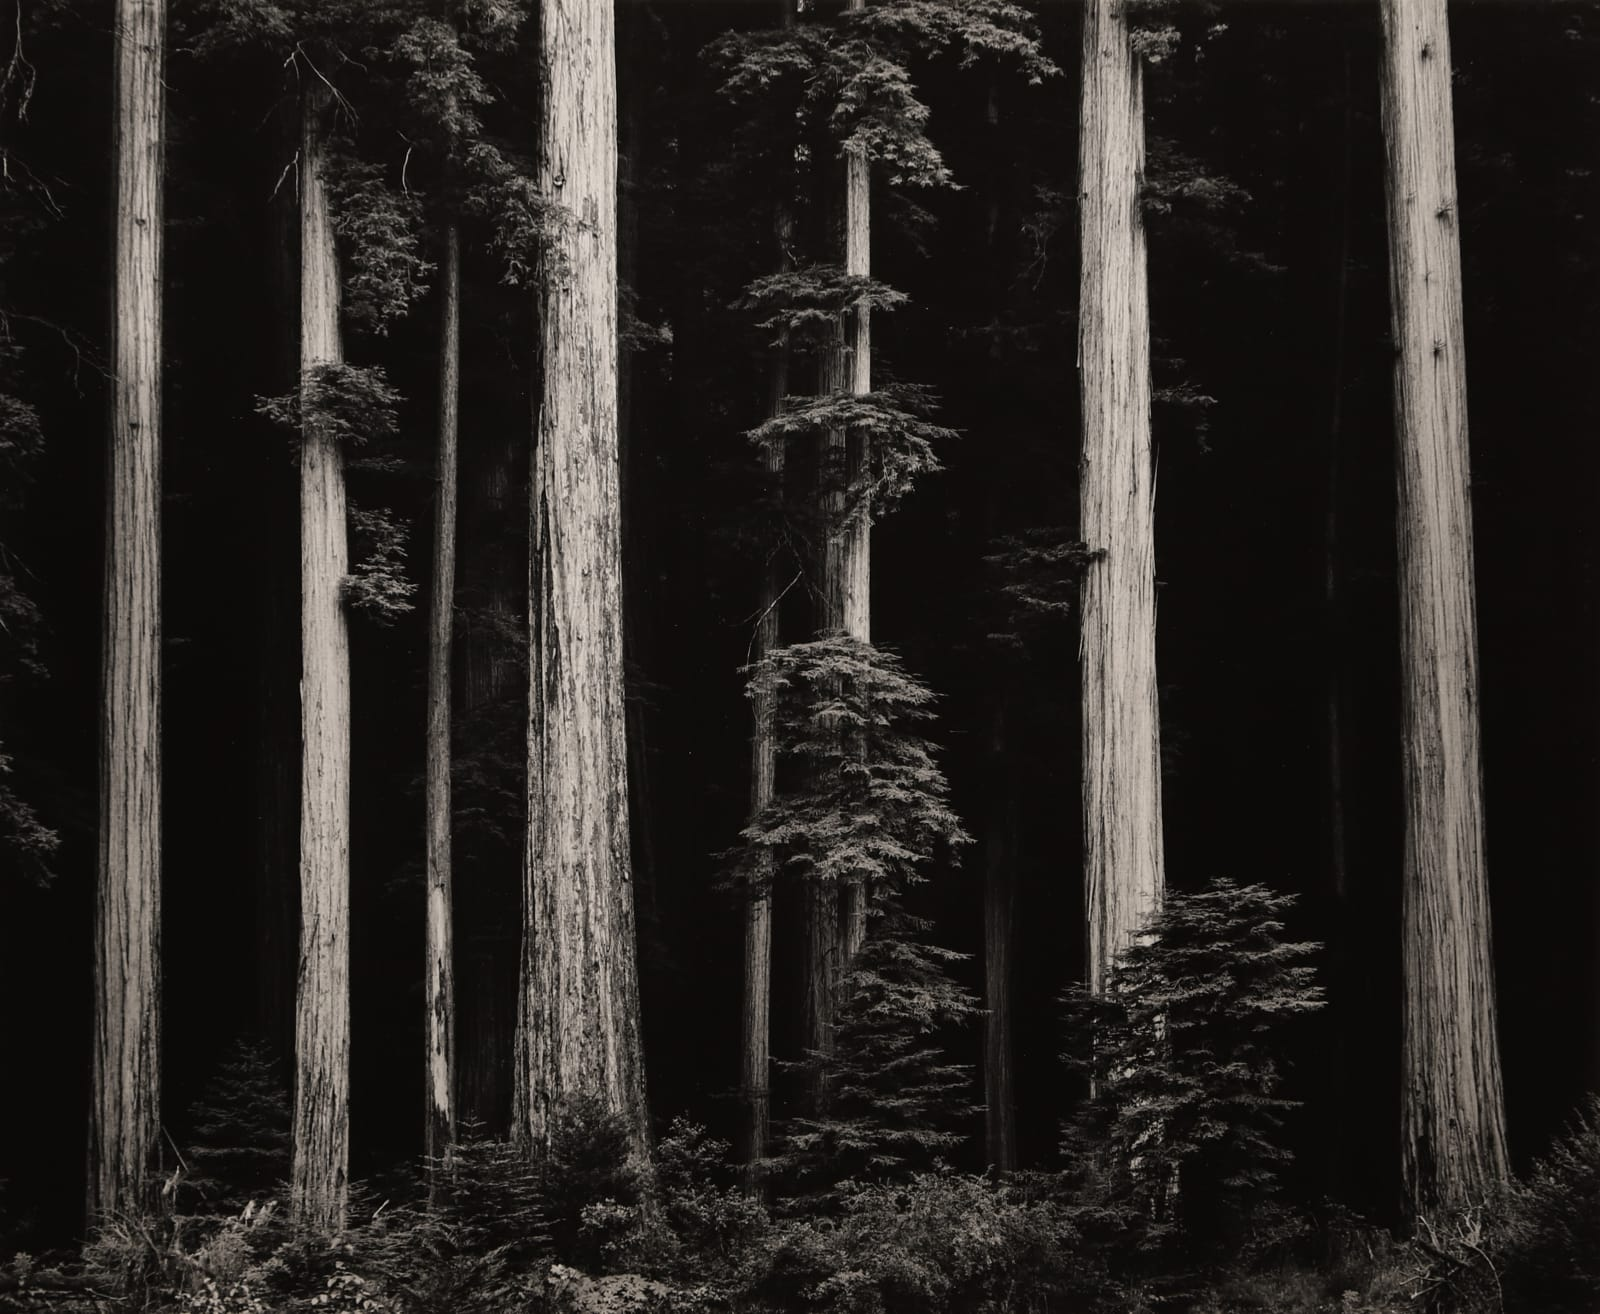 Ansel Adams, Northern California Coast Redwoods, 1960